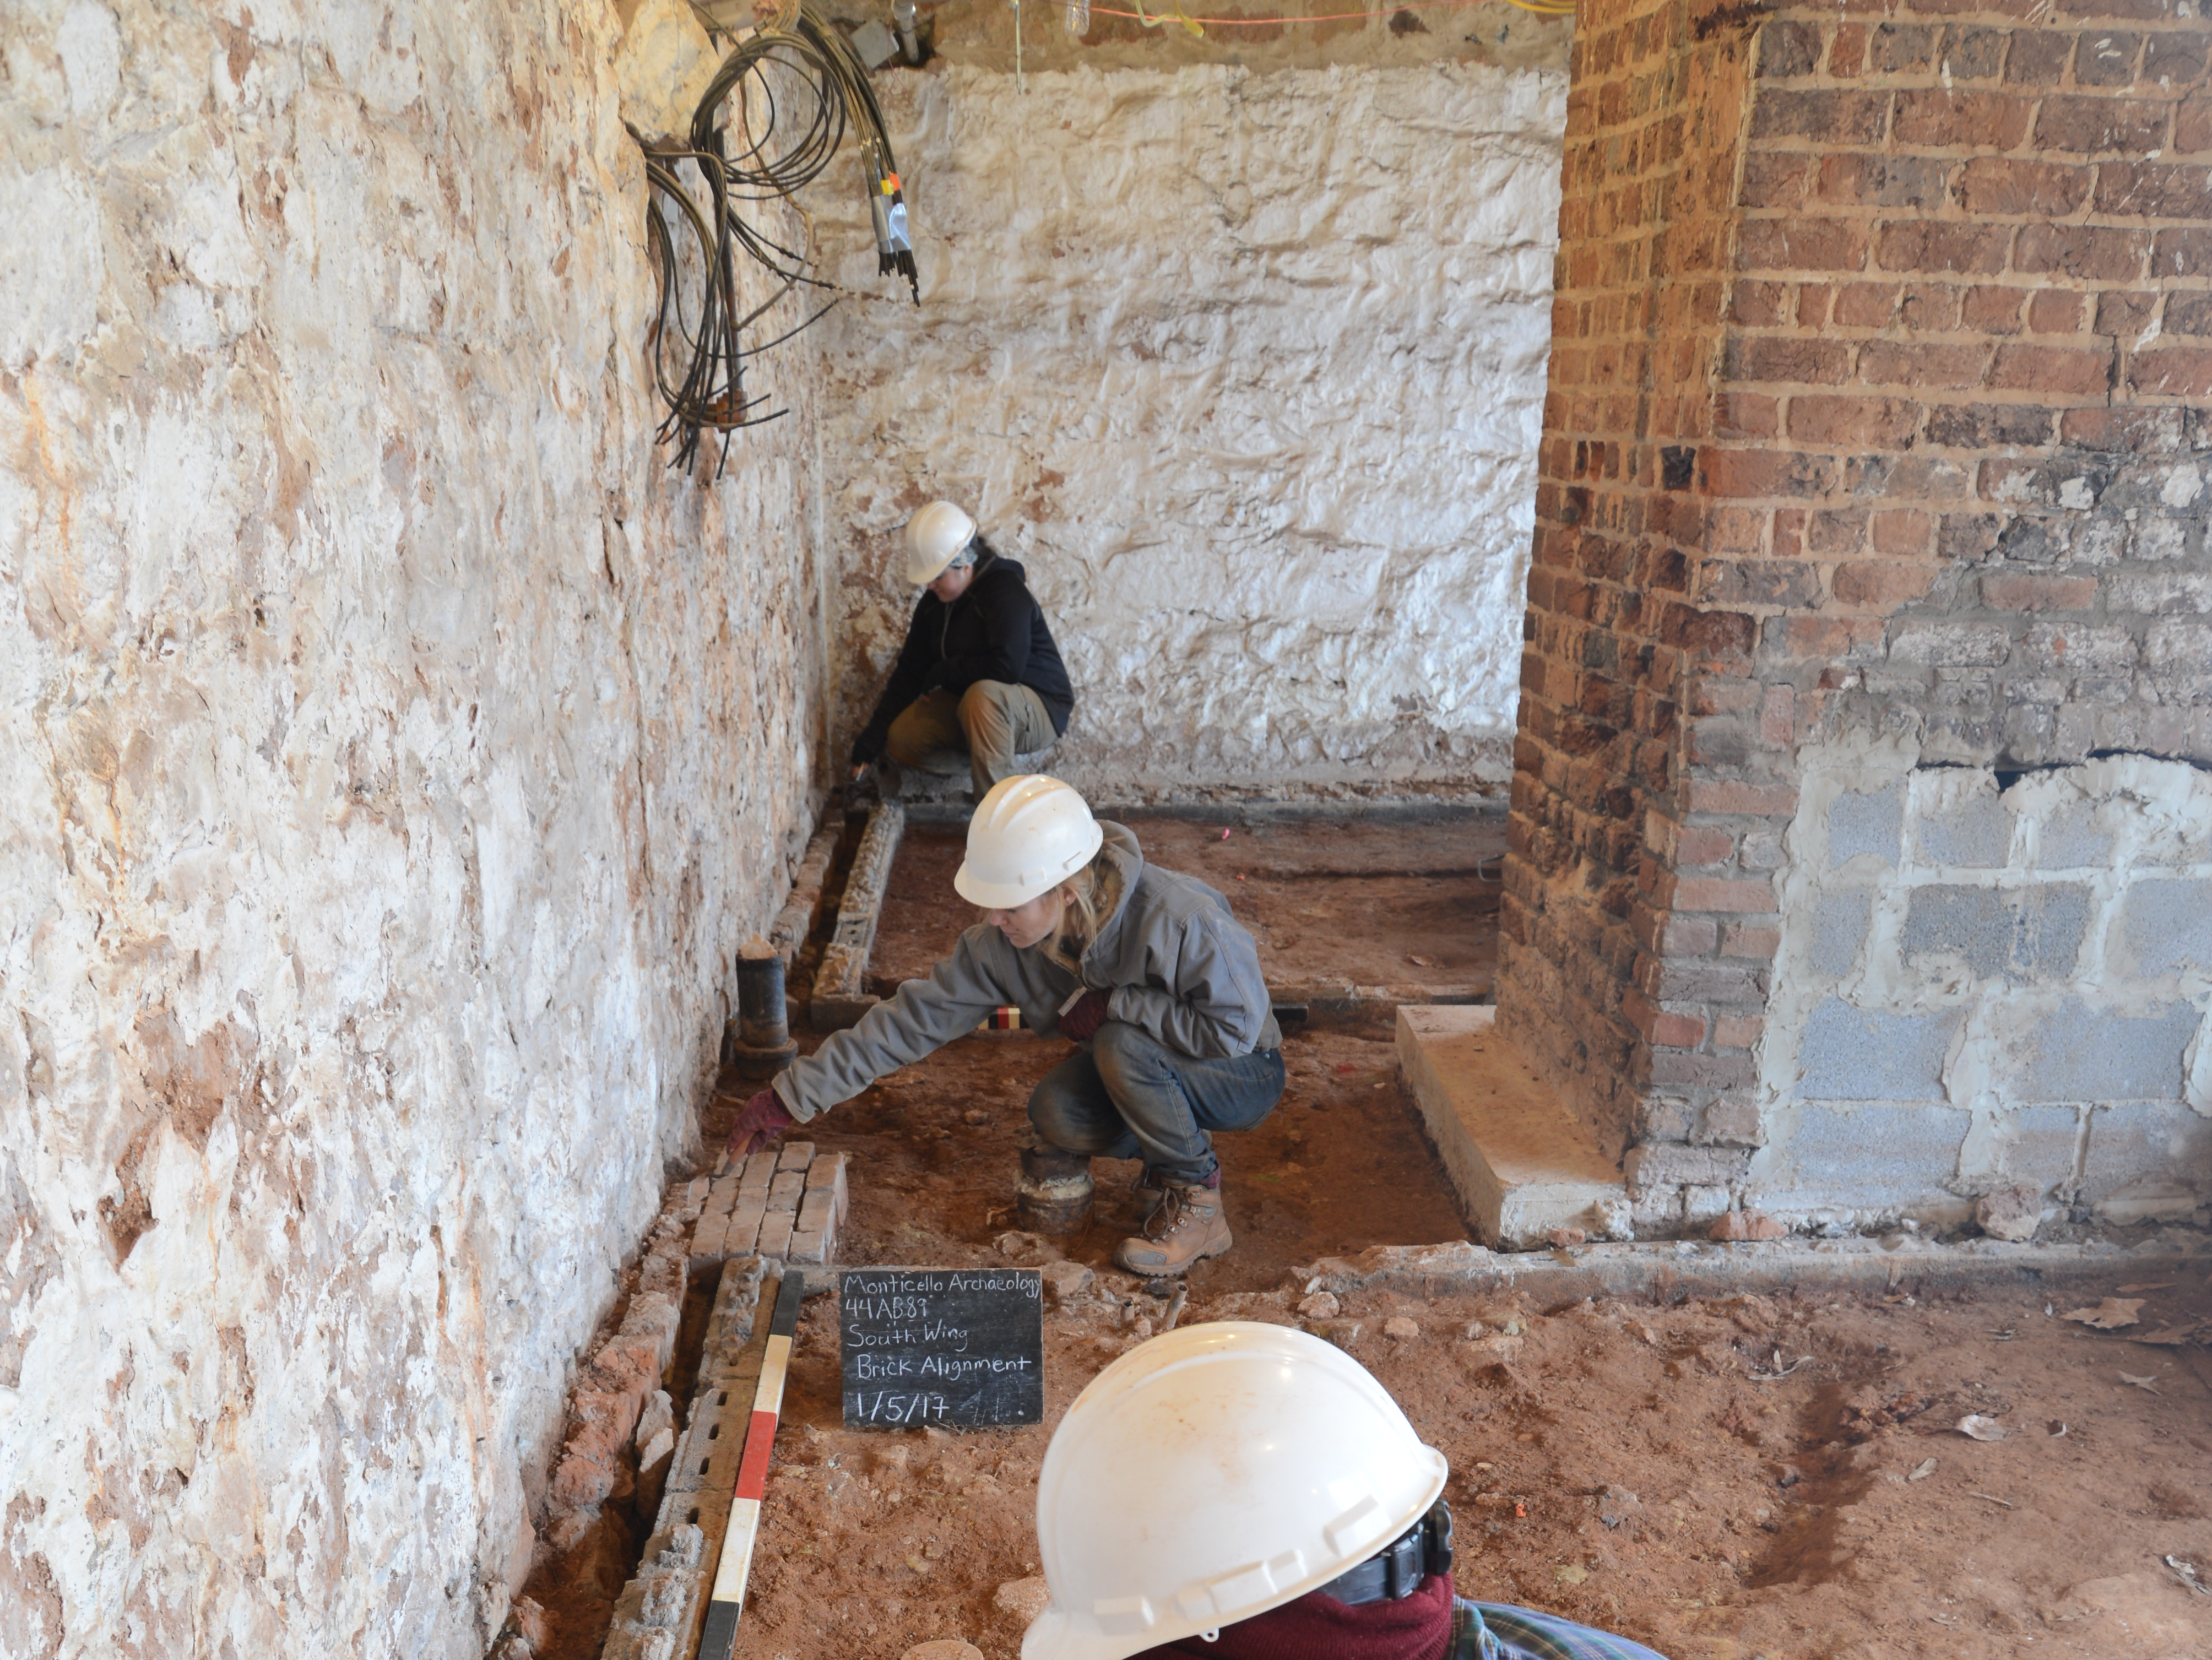 Archaeologists uncover the original brick floor of what is believed to be Sally Hemings' living quarters at Monticello.     ©Thomas Jefferson Foundation at Monticello